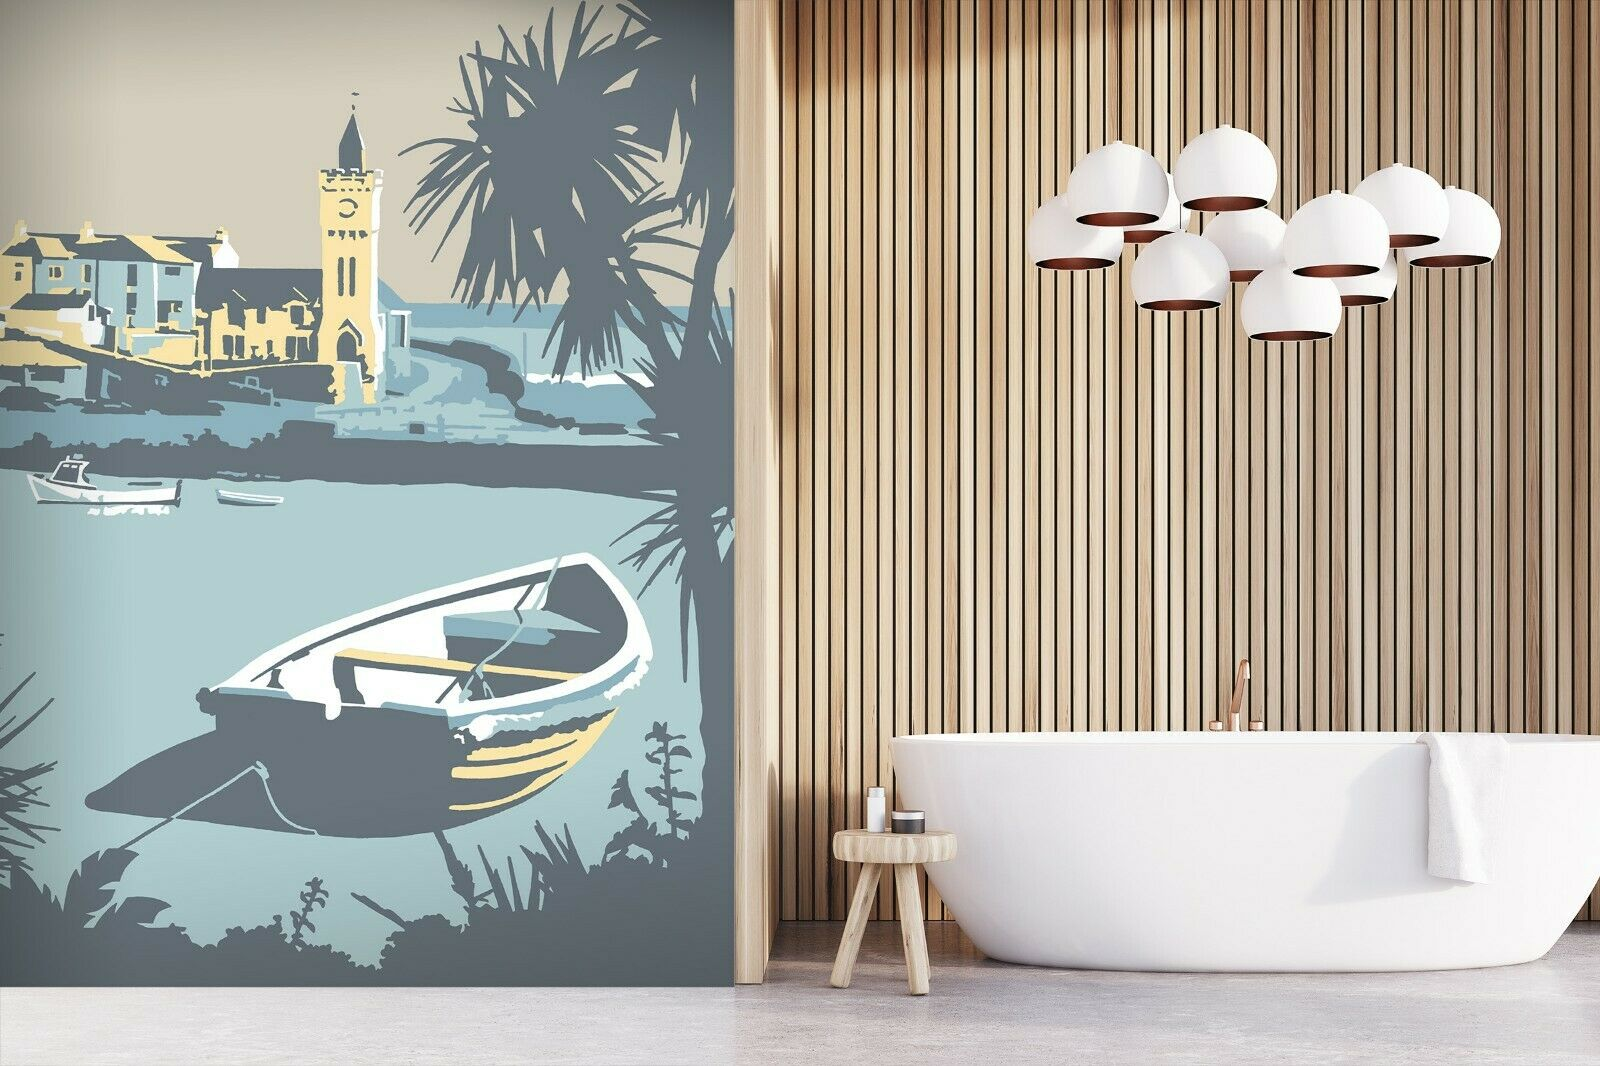 3D Porthleven N342 Wallpaper Wall Mural Removable Self-adhesive Steve Rea Amy